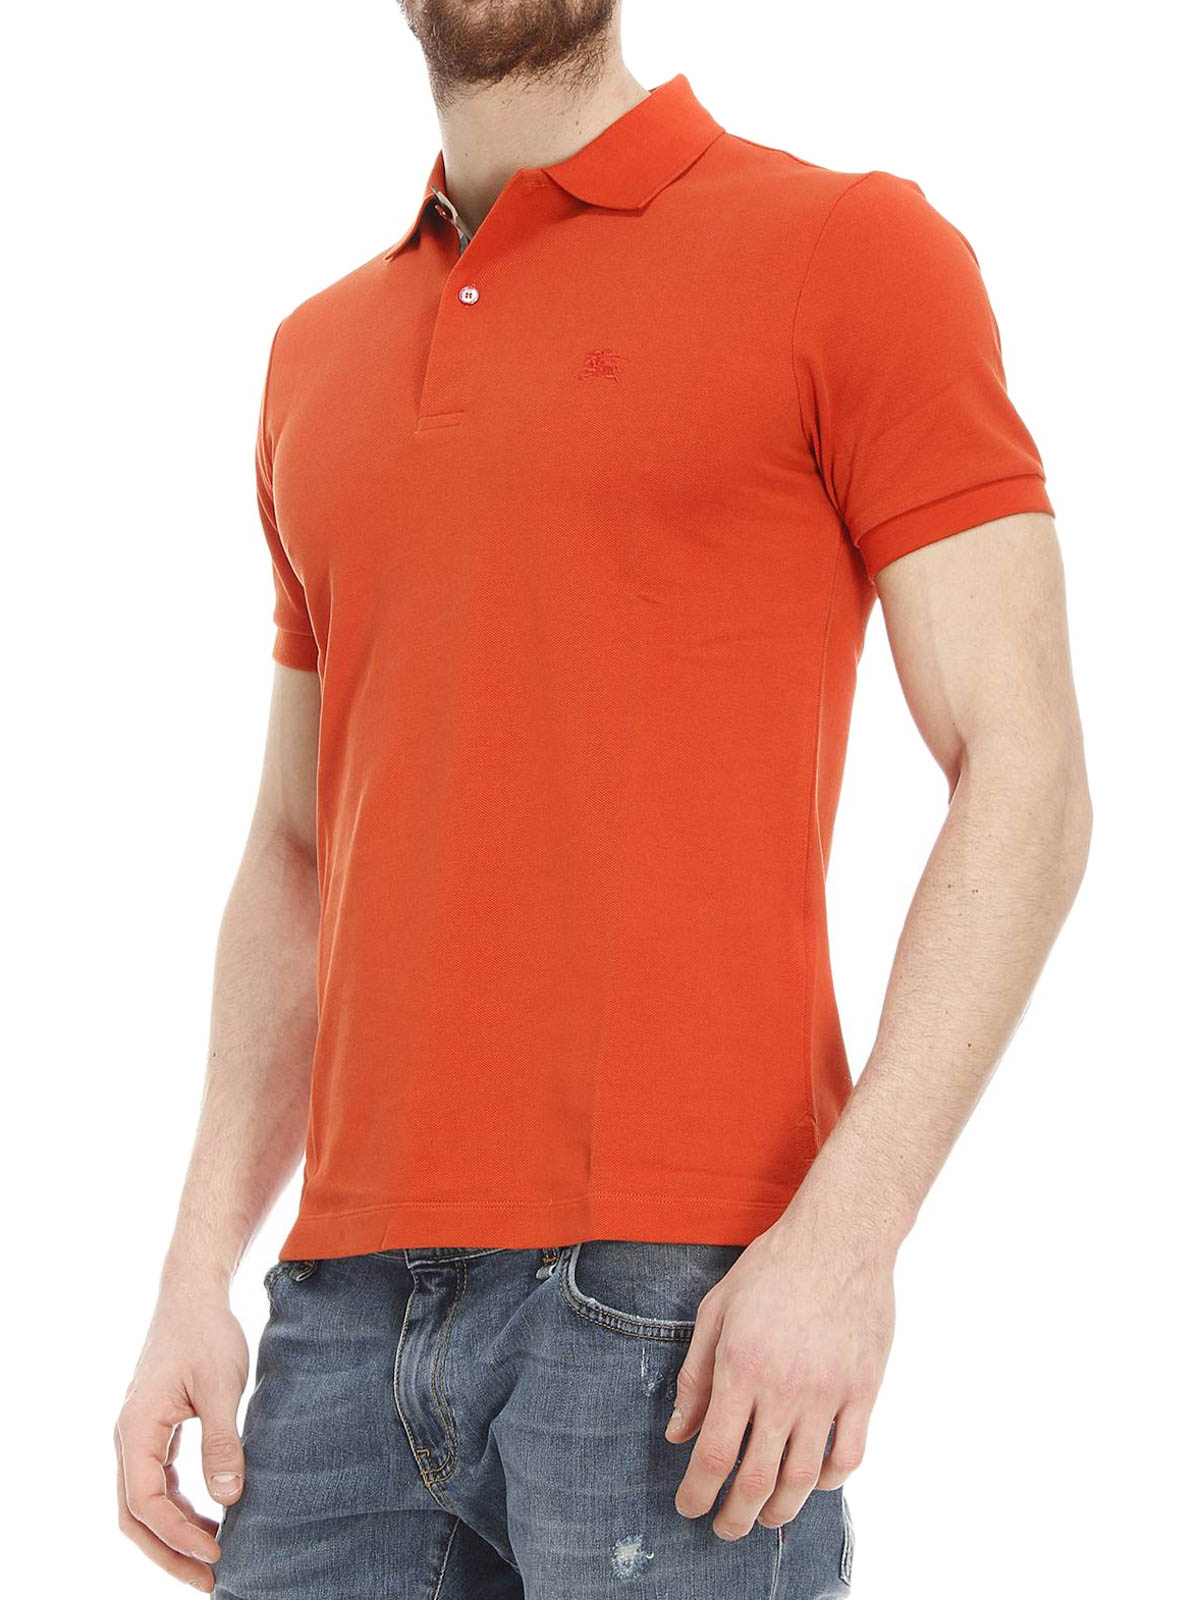 Oxford cotton pique polo by burberry polo shirts ikrix for Cotton on polo shirt